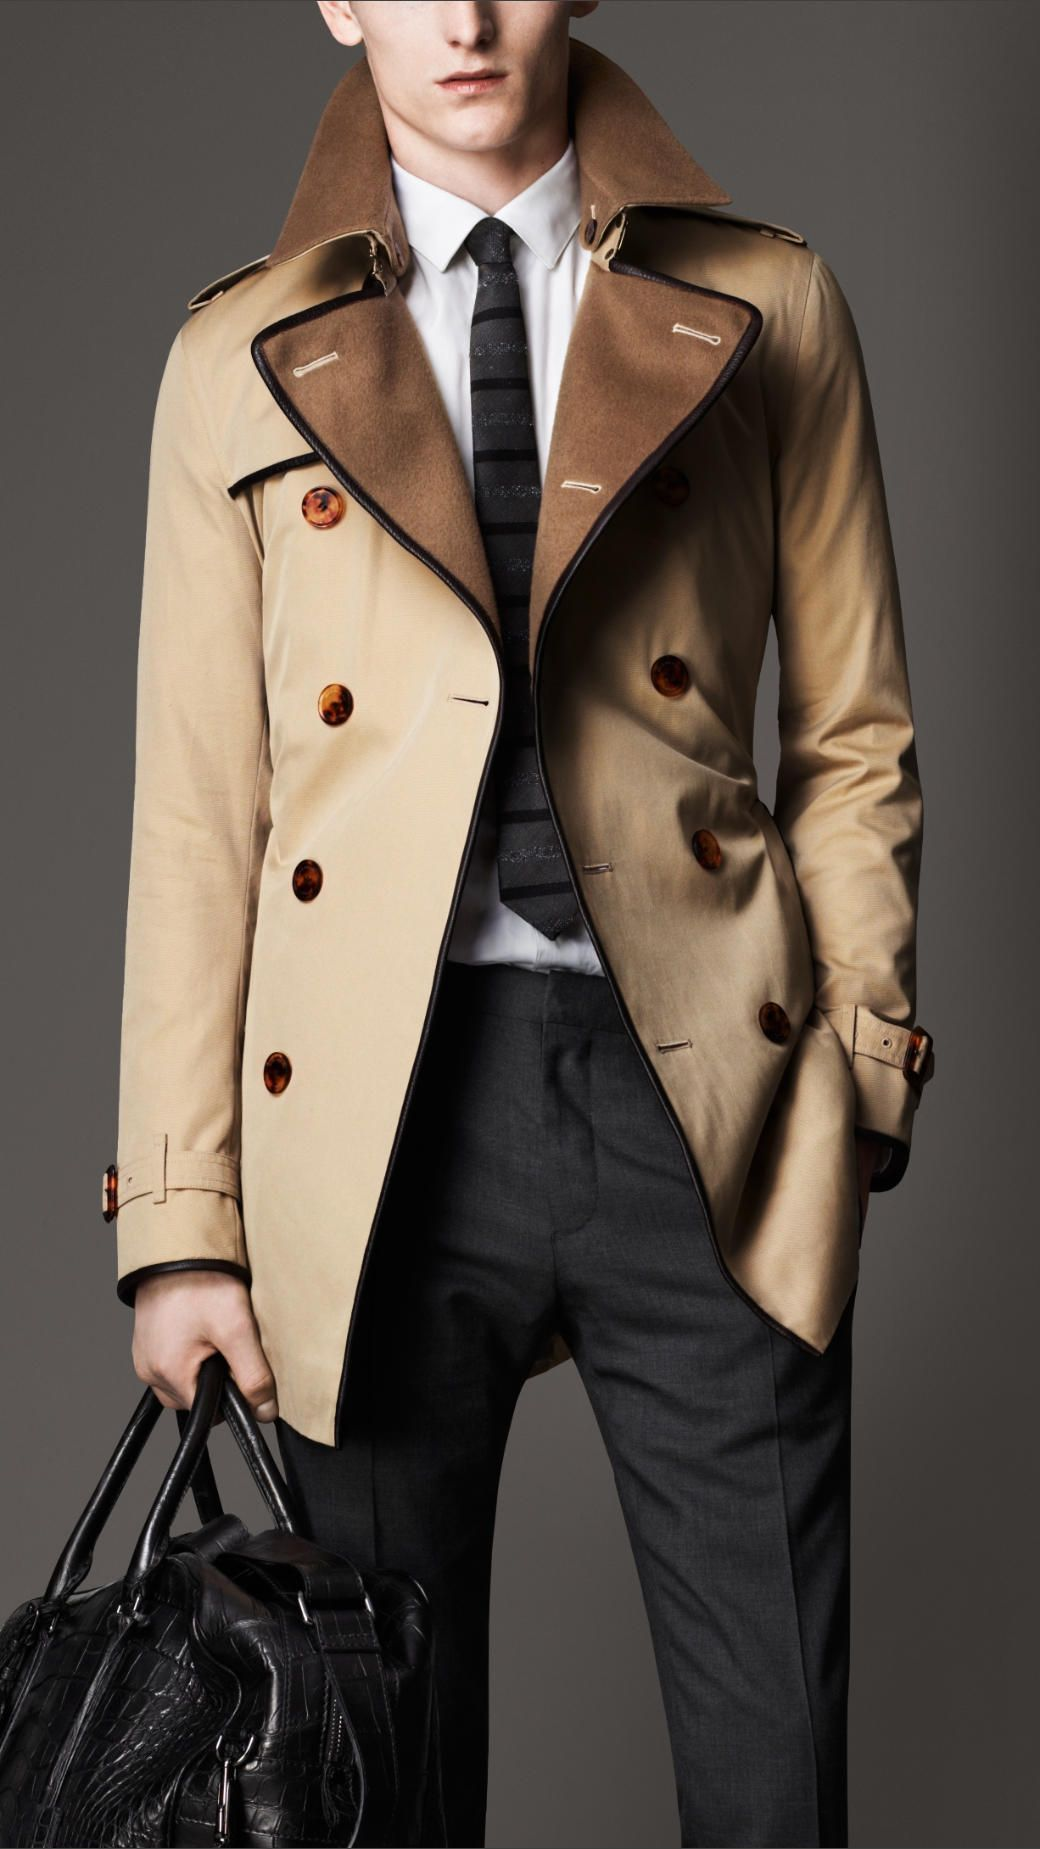 Trench Coats for Men   Burberry®   Dream wardrobe   Pinterest   Mode ... bb1b1cb98fbb